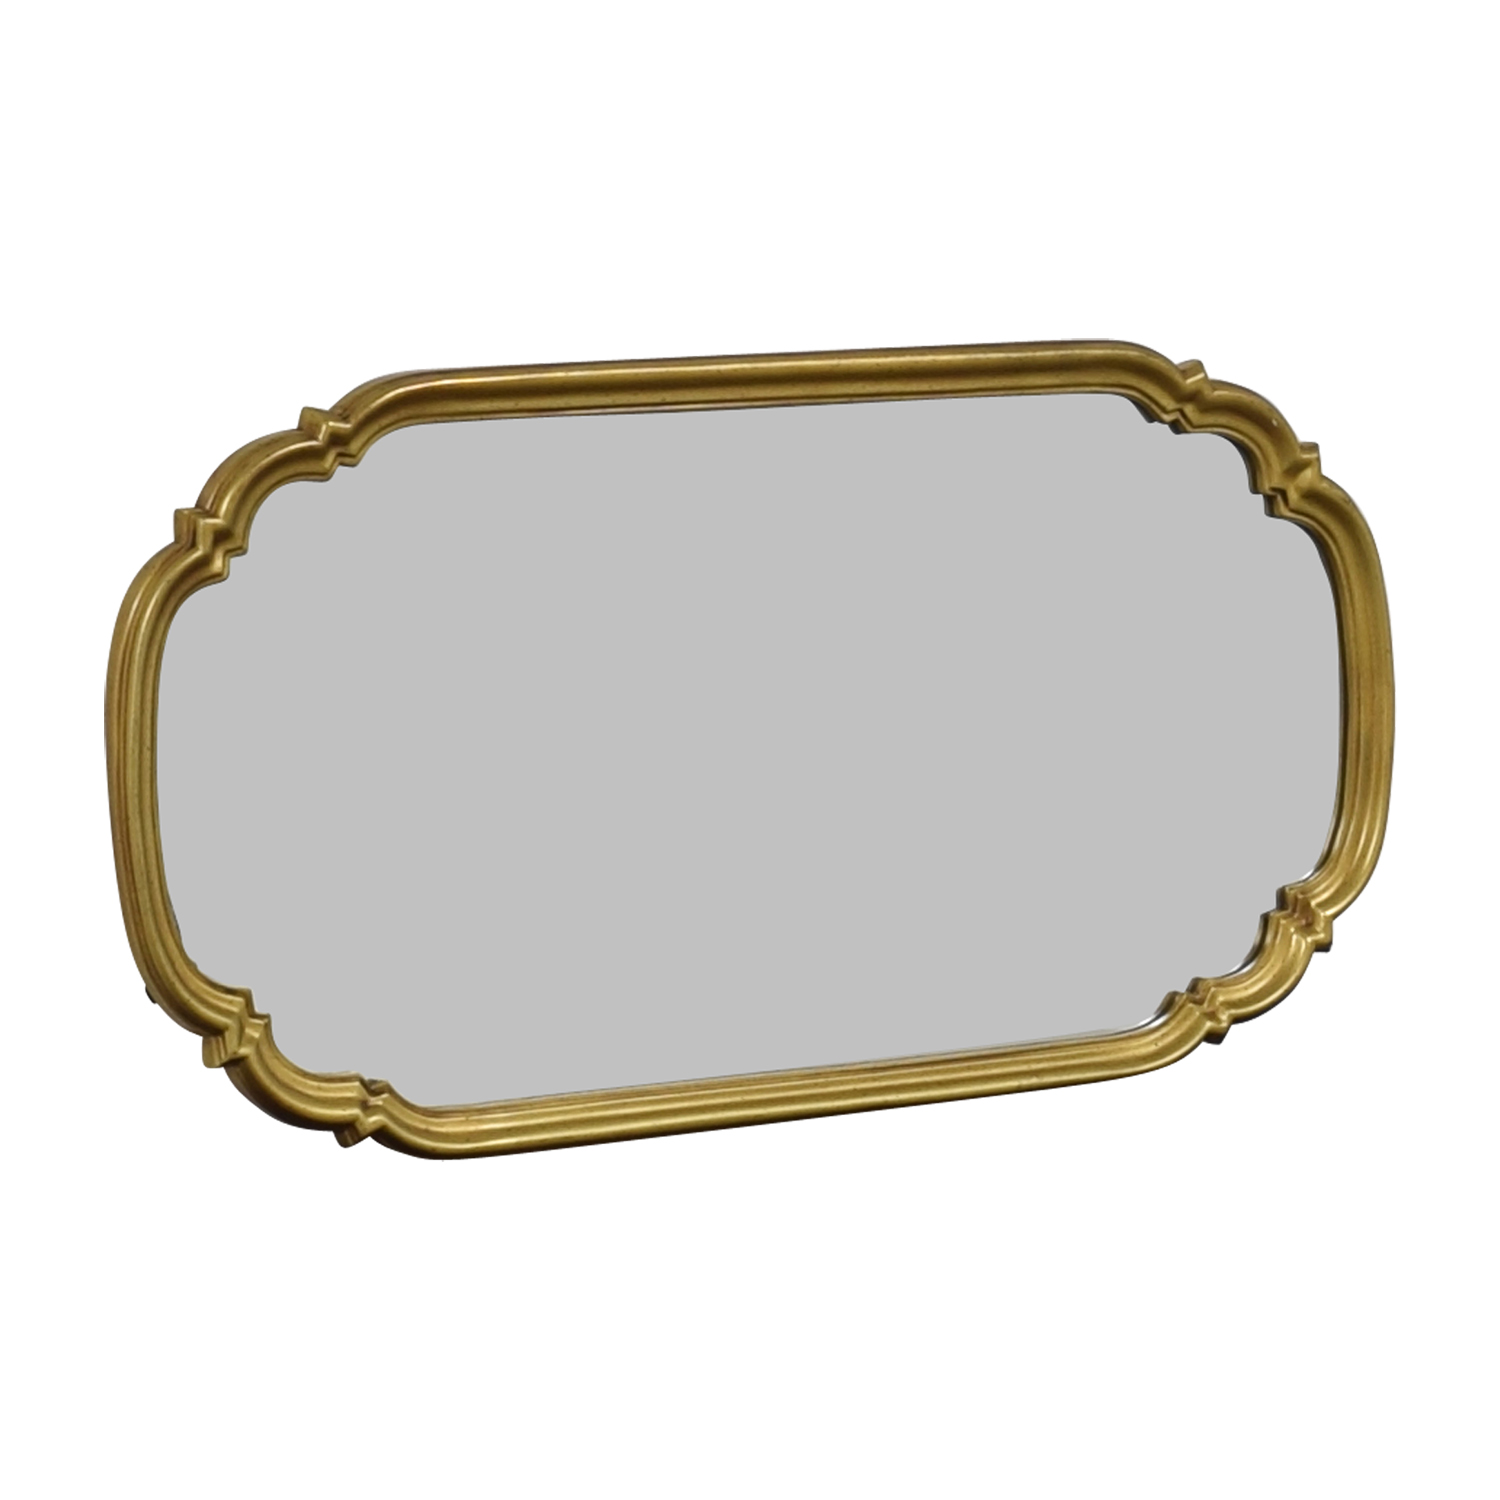 Oval Ornate Gold Framed Mirror / Sofas